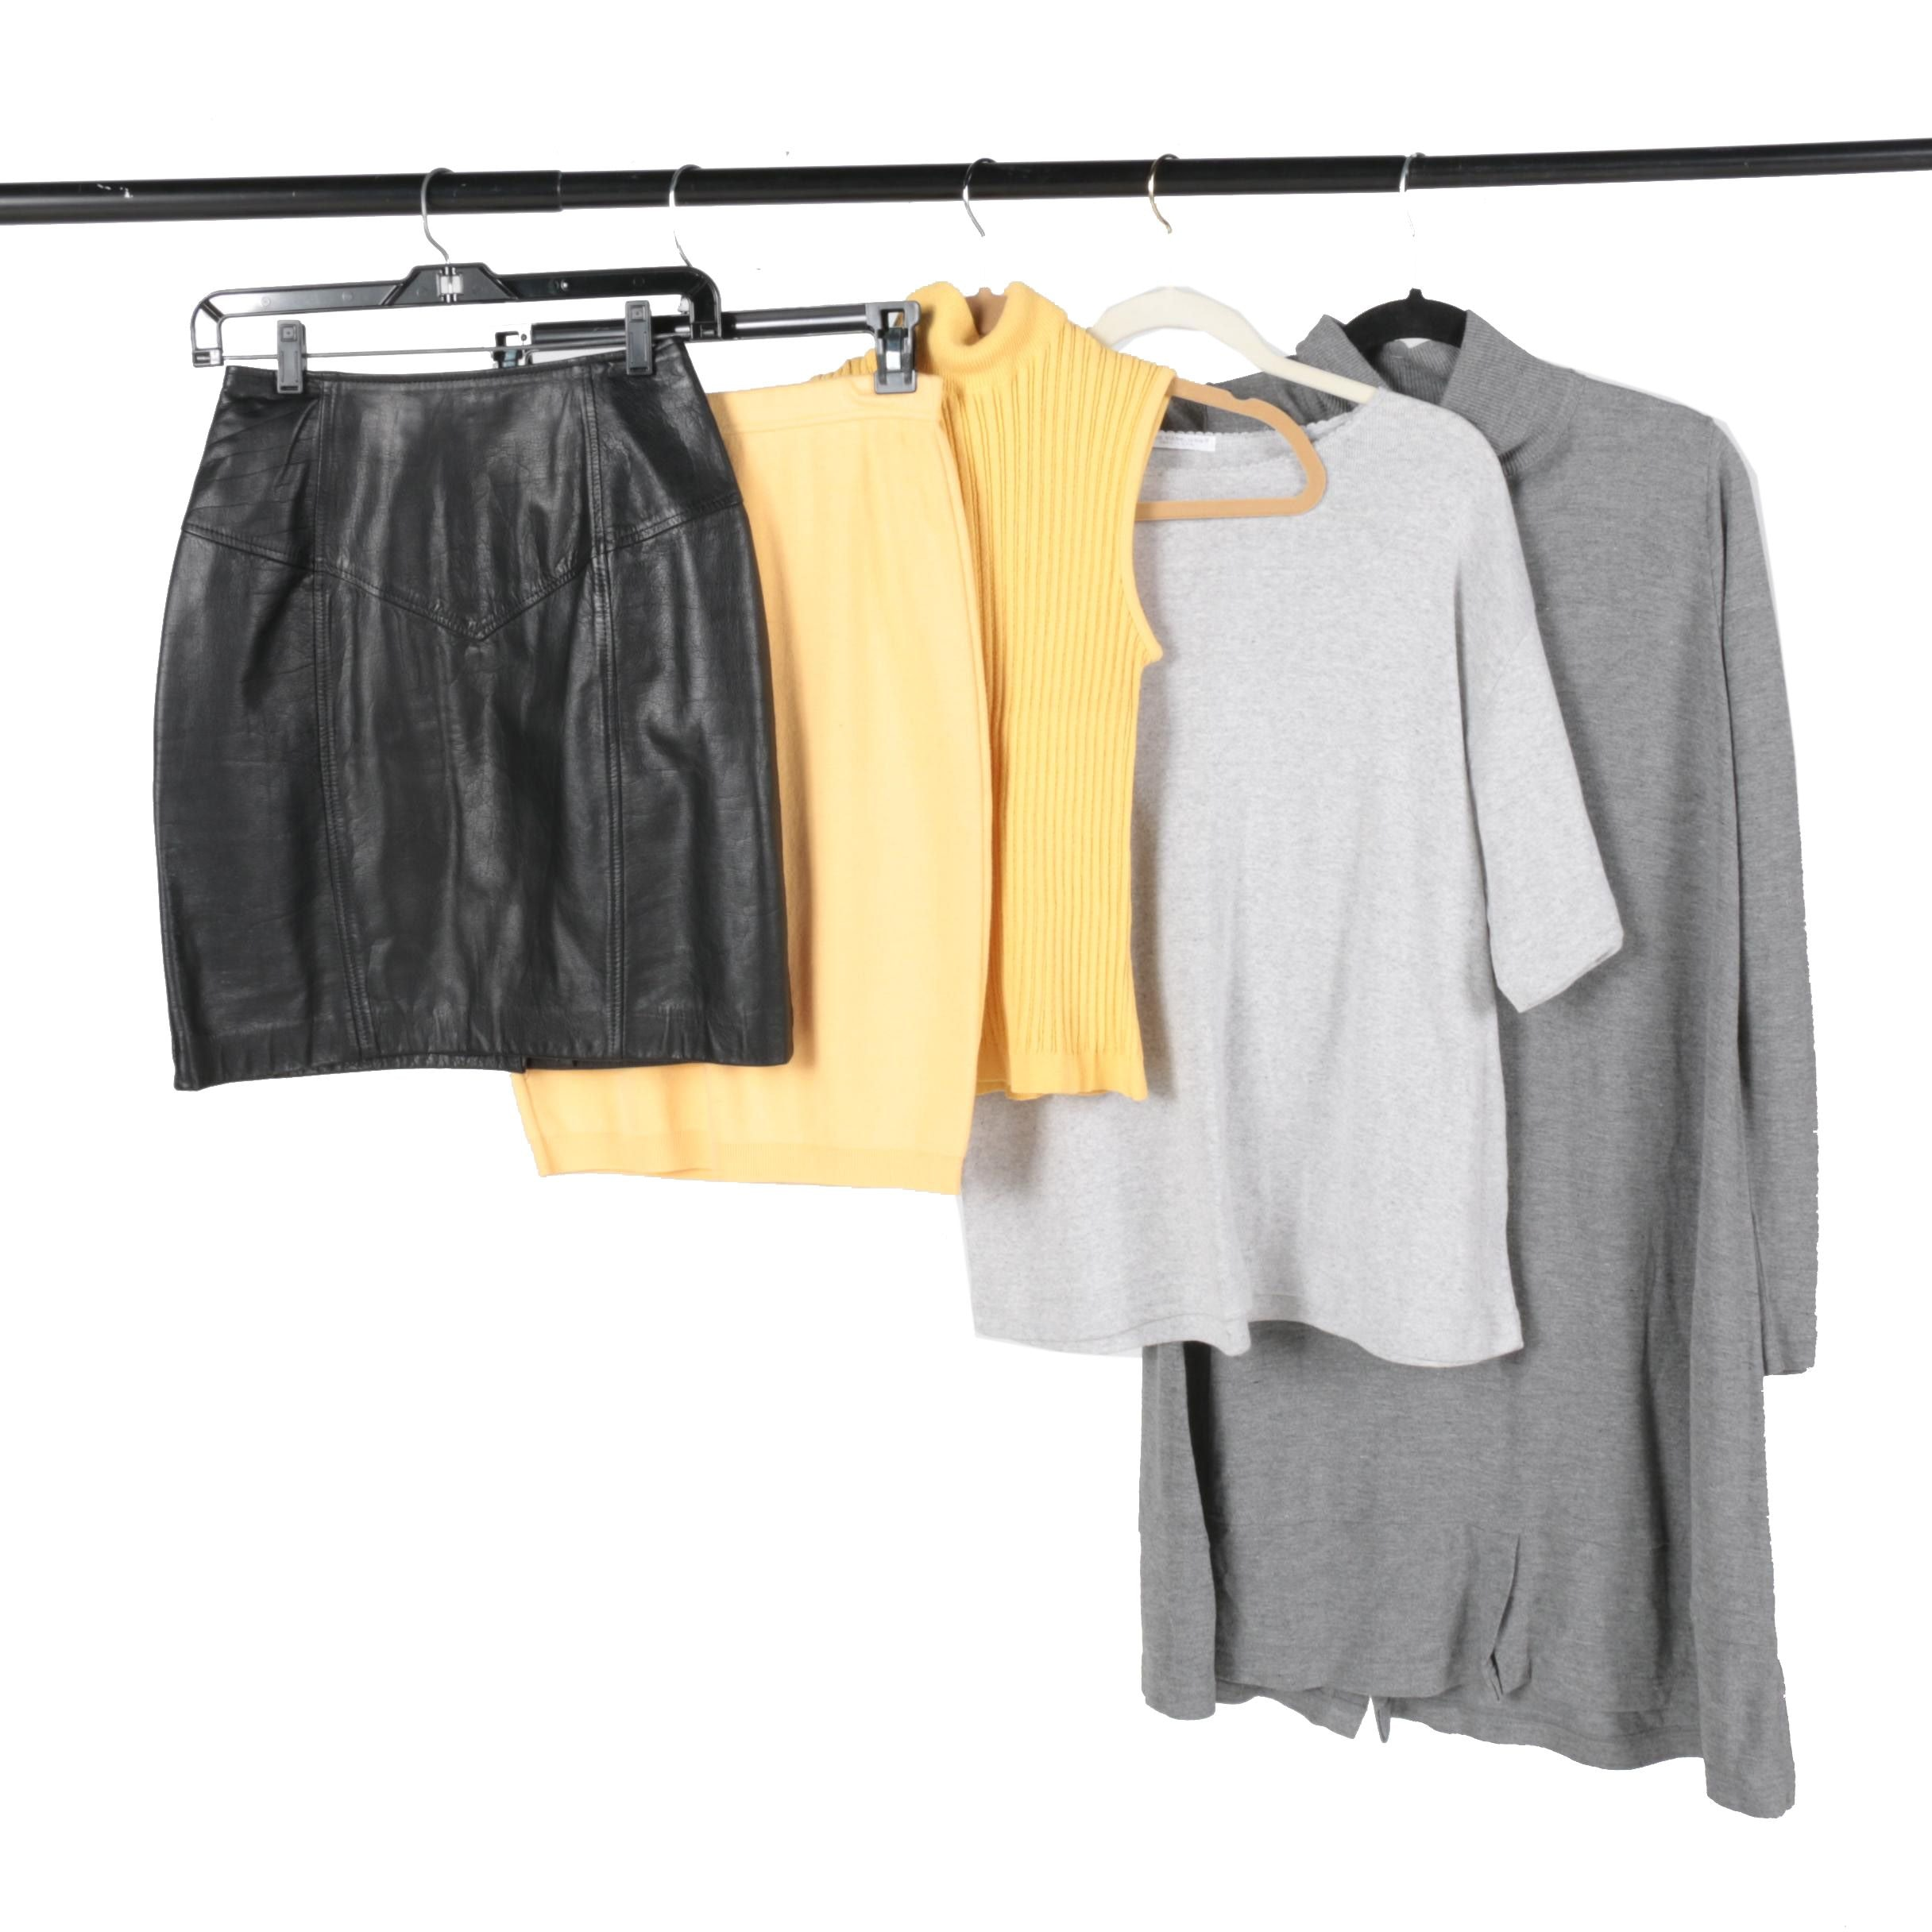 Women's Separates Including Joan Vass